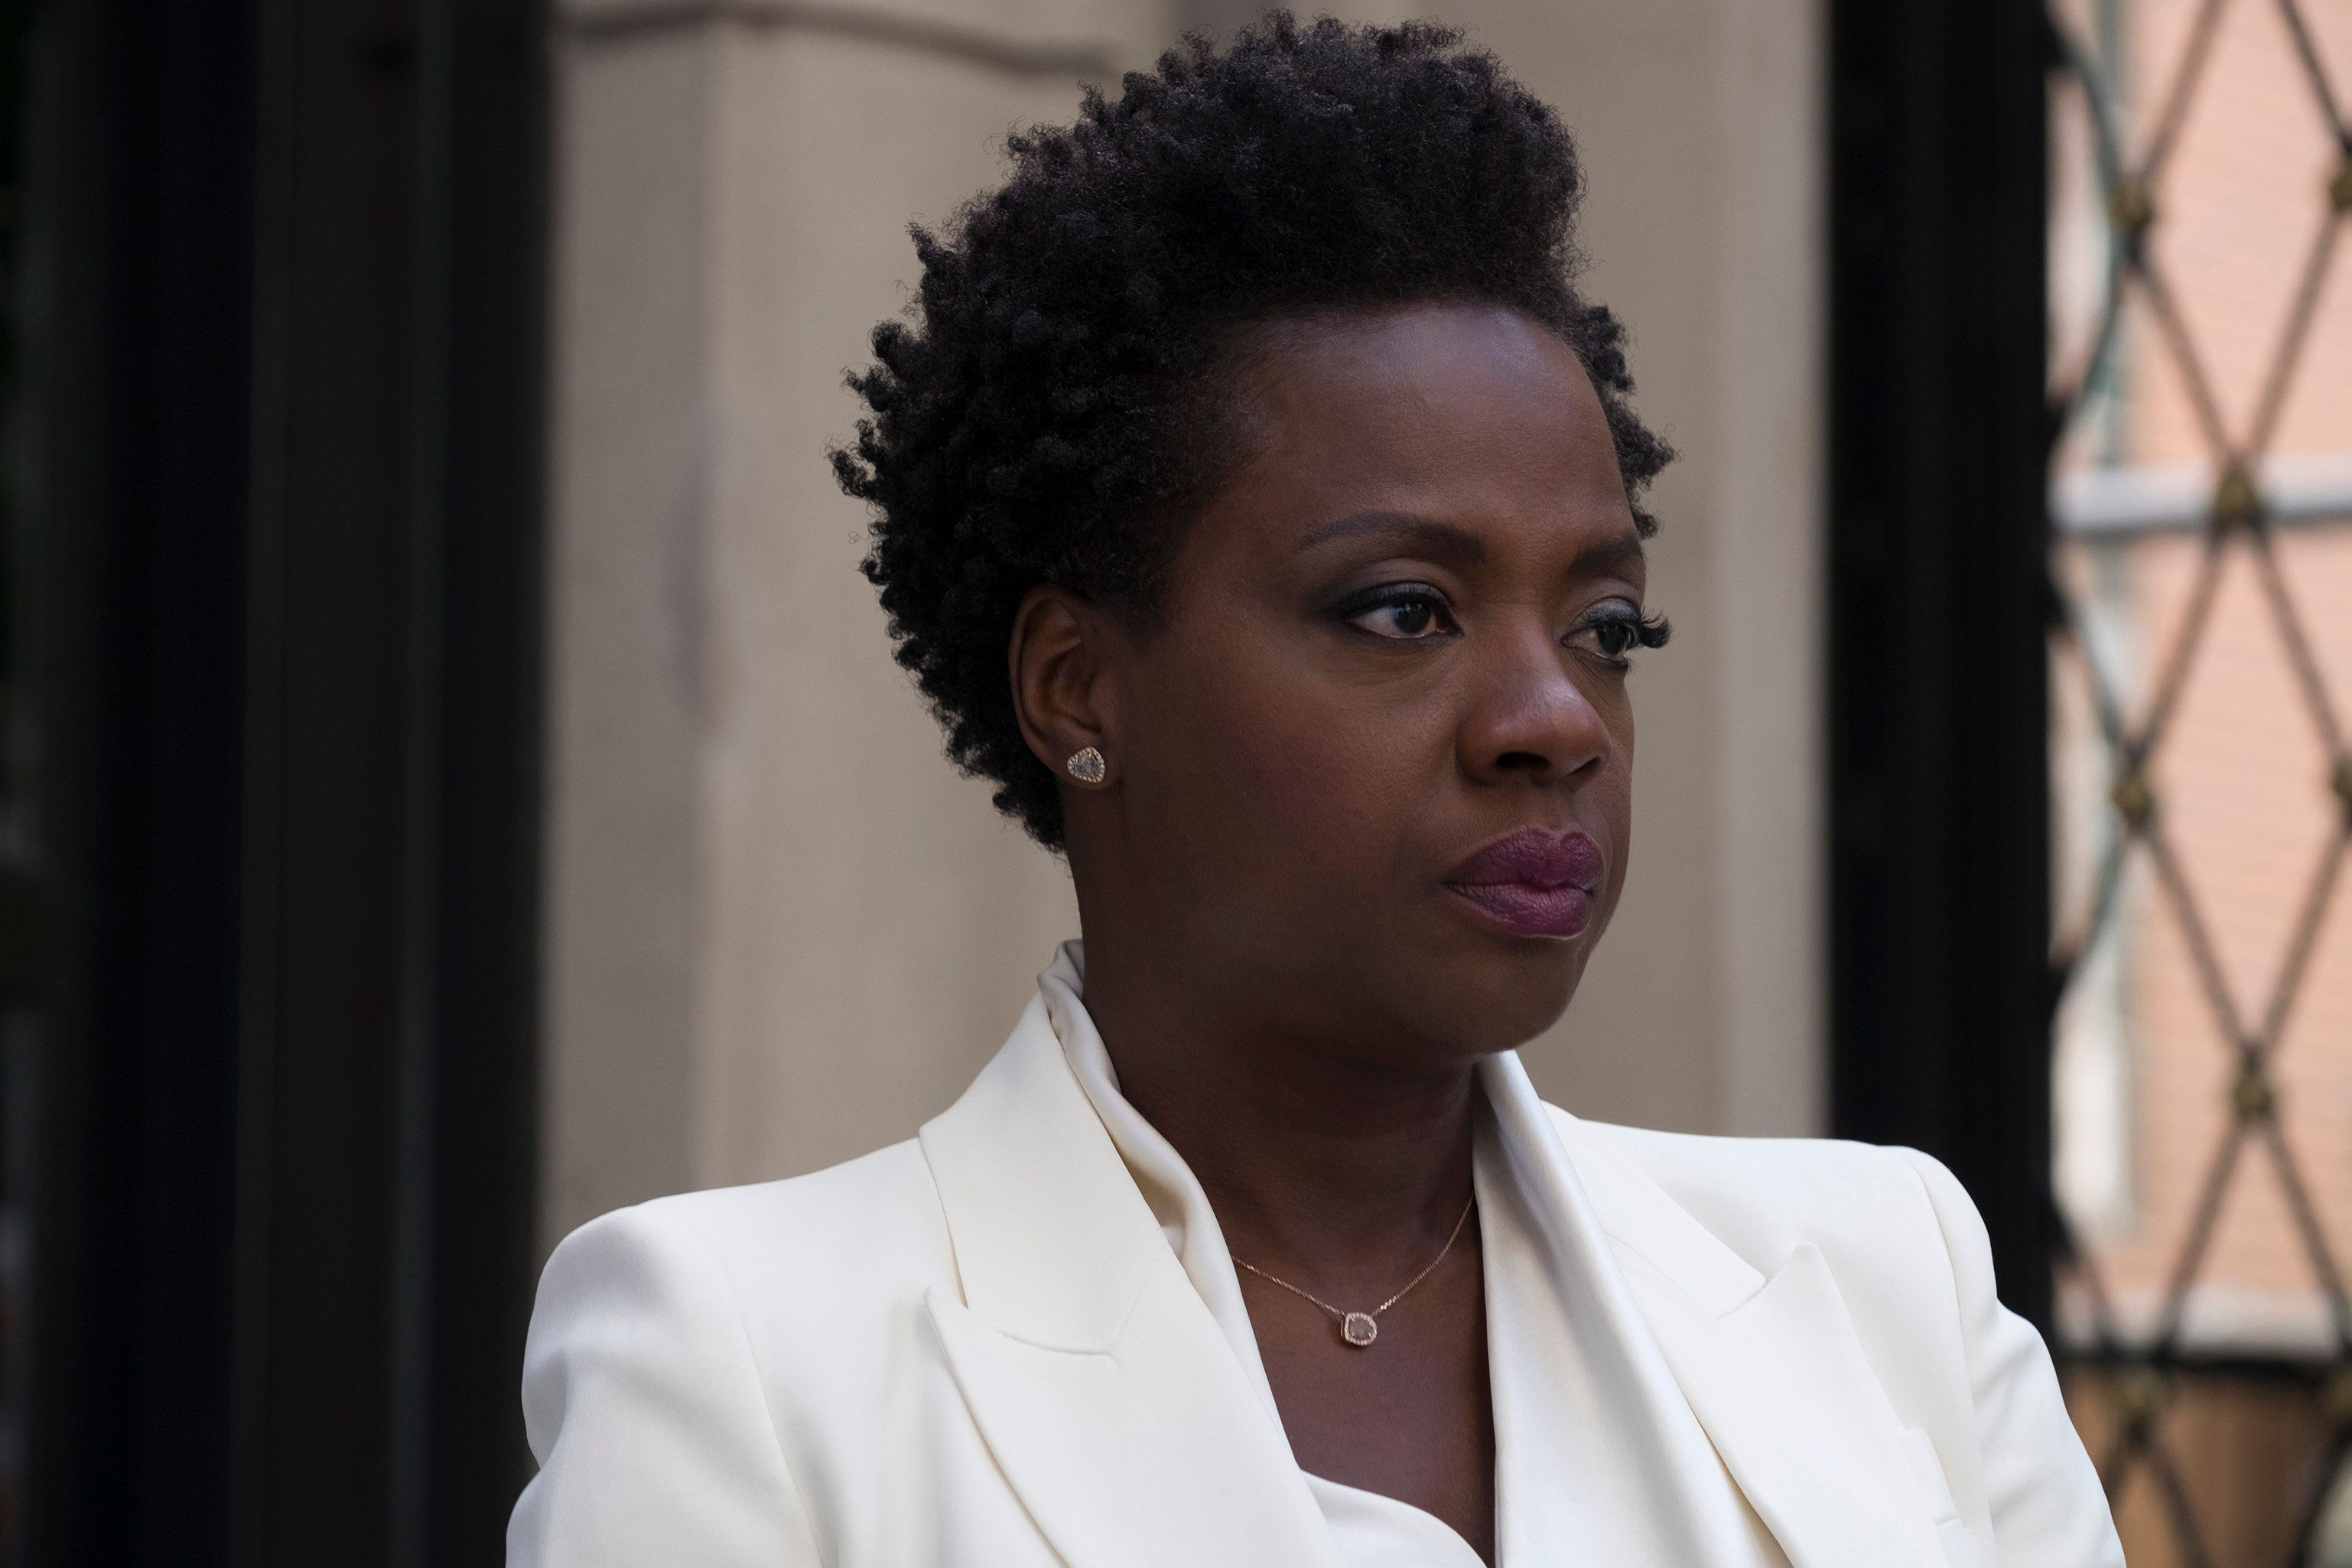 WID-008 - Viola Davis stars in Twentieth Century Fox's WIDOWS. Photo Credit: Merrick Morton.